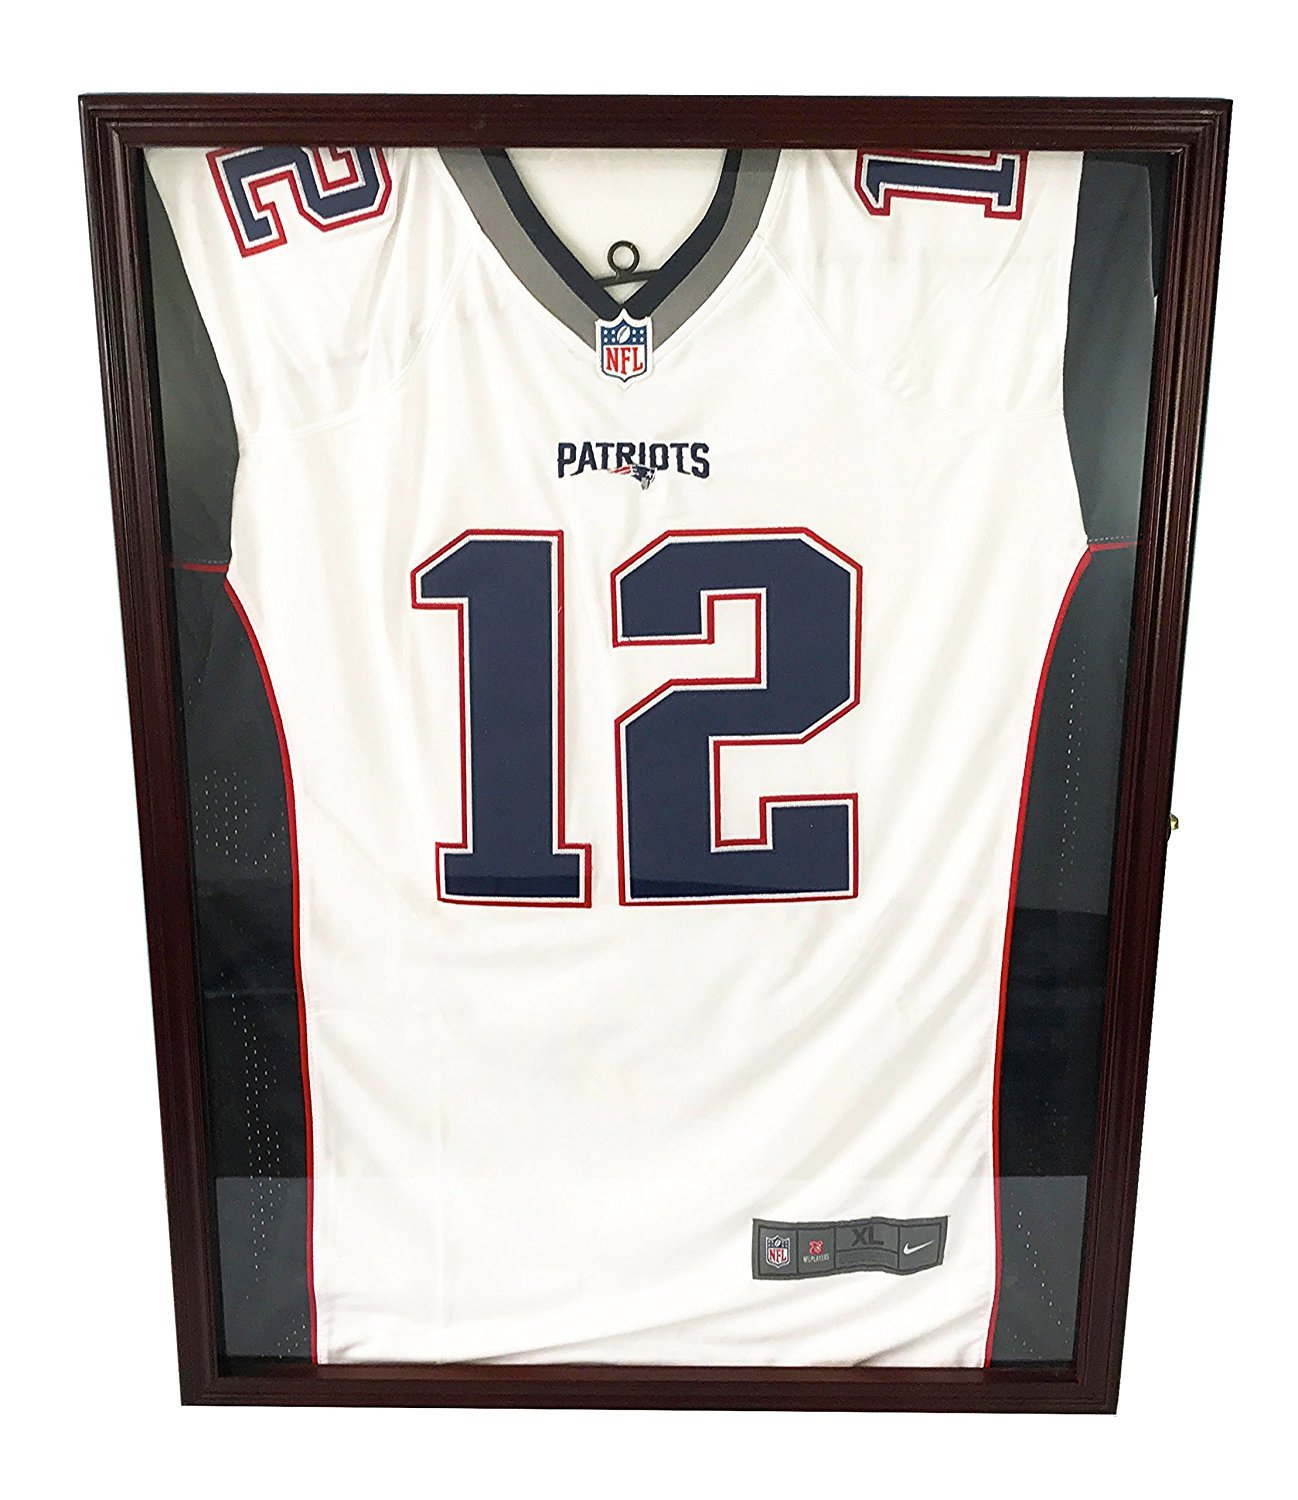 DECOMIL ULTRA CLEAR UV Protection Baseball/Football Jersey Frame Display Case Shadow Box, Cherry